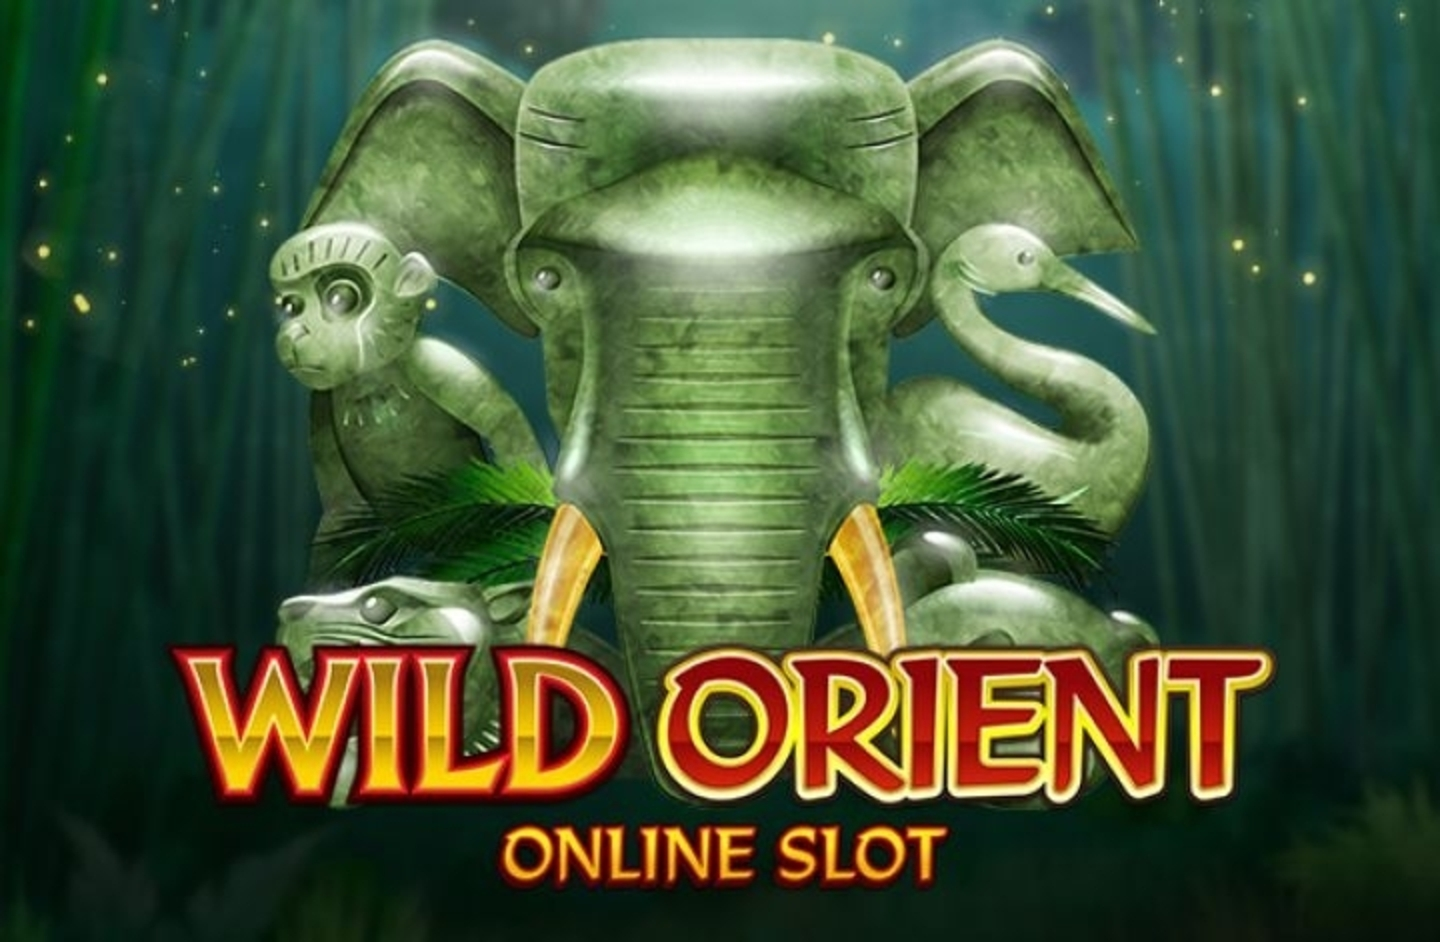 The Wild Orient Online Slot Demo Game by Microgaming